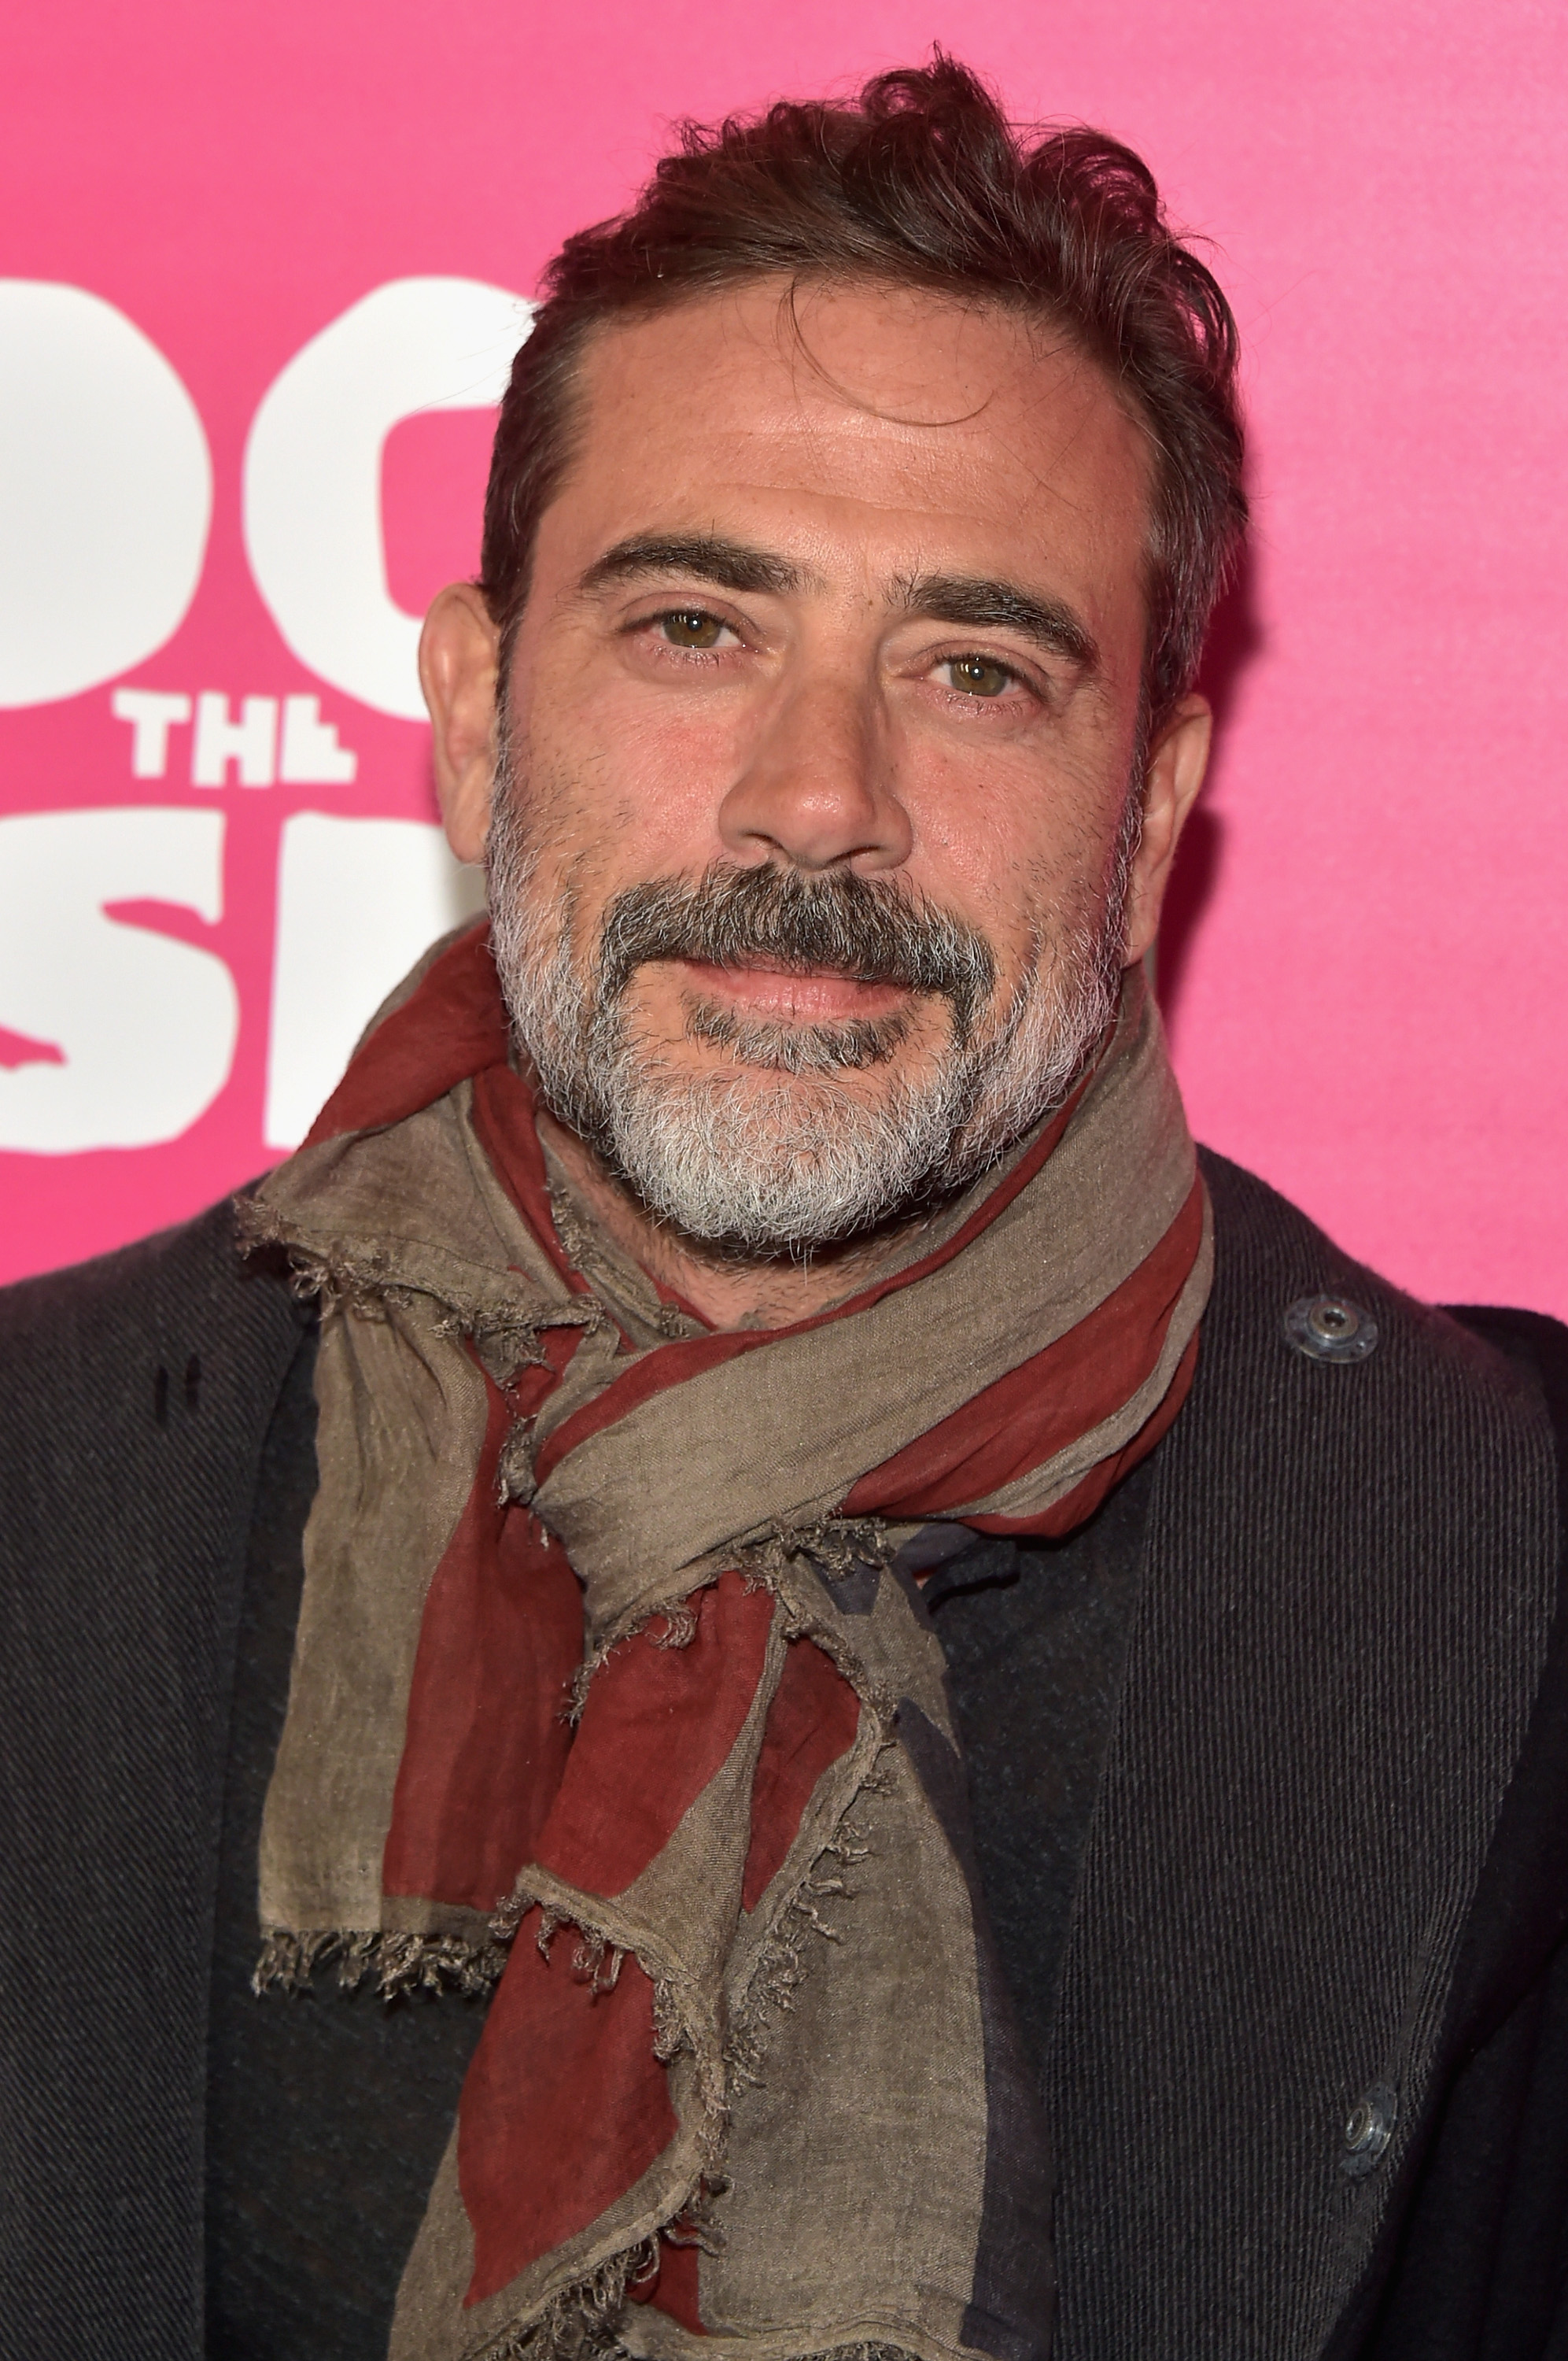 Jeffrey dean morgan wallpapers high quality download free for The morgan